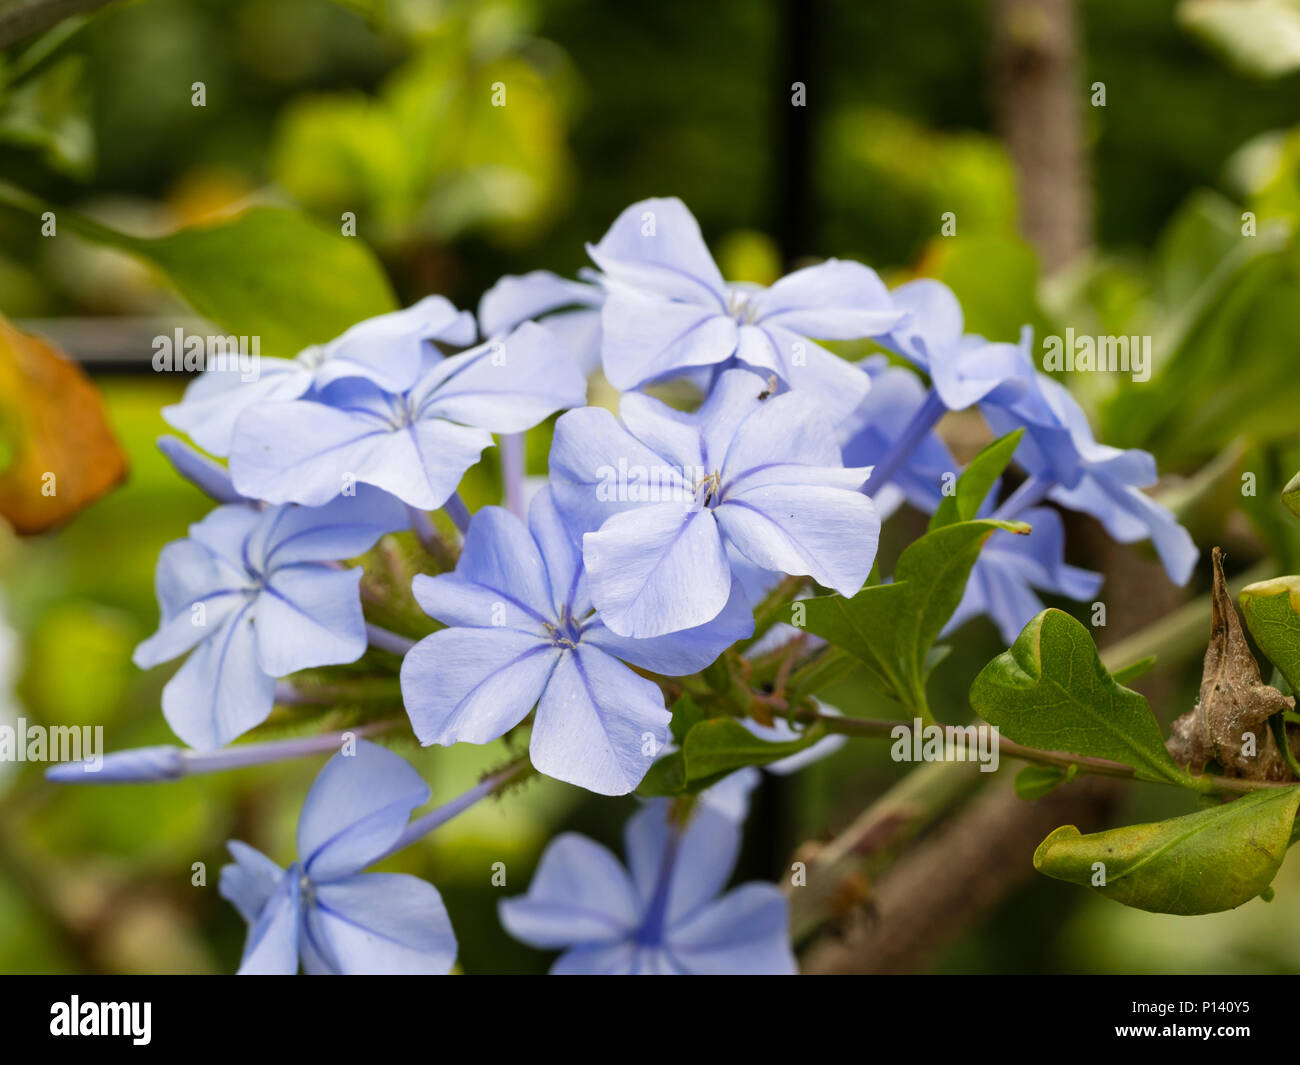 Pale blue flowers of the tender Cape figwort, Plumbago capensis, a tender scrambling shrub - Stock Image